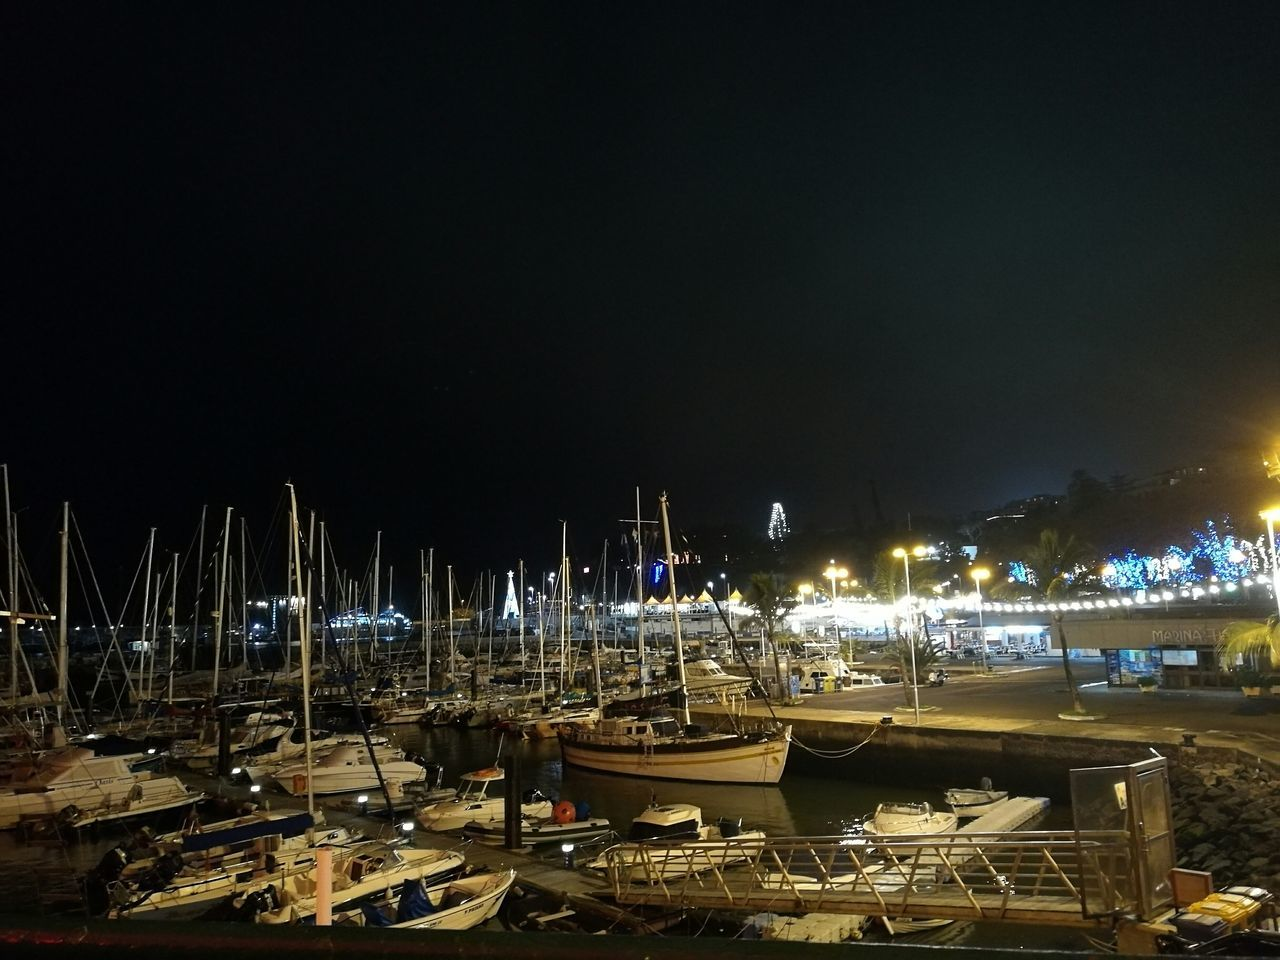 Night No People Moored Outdoors Nautical Vessel Water Surface Tranquility Alonetime